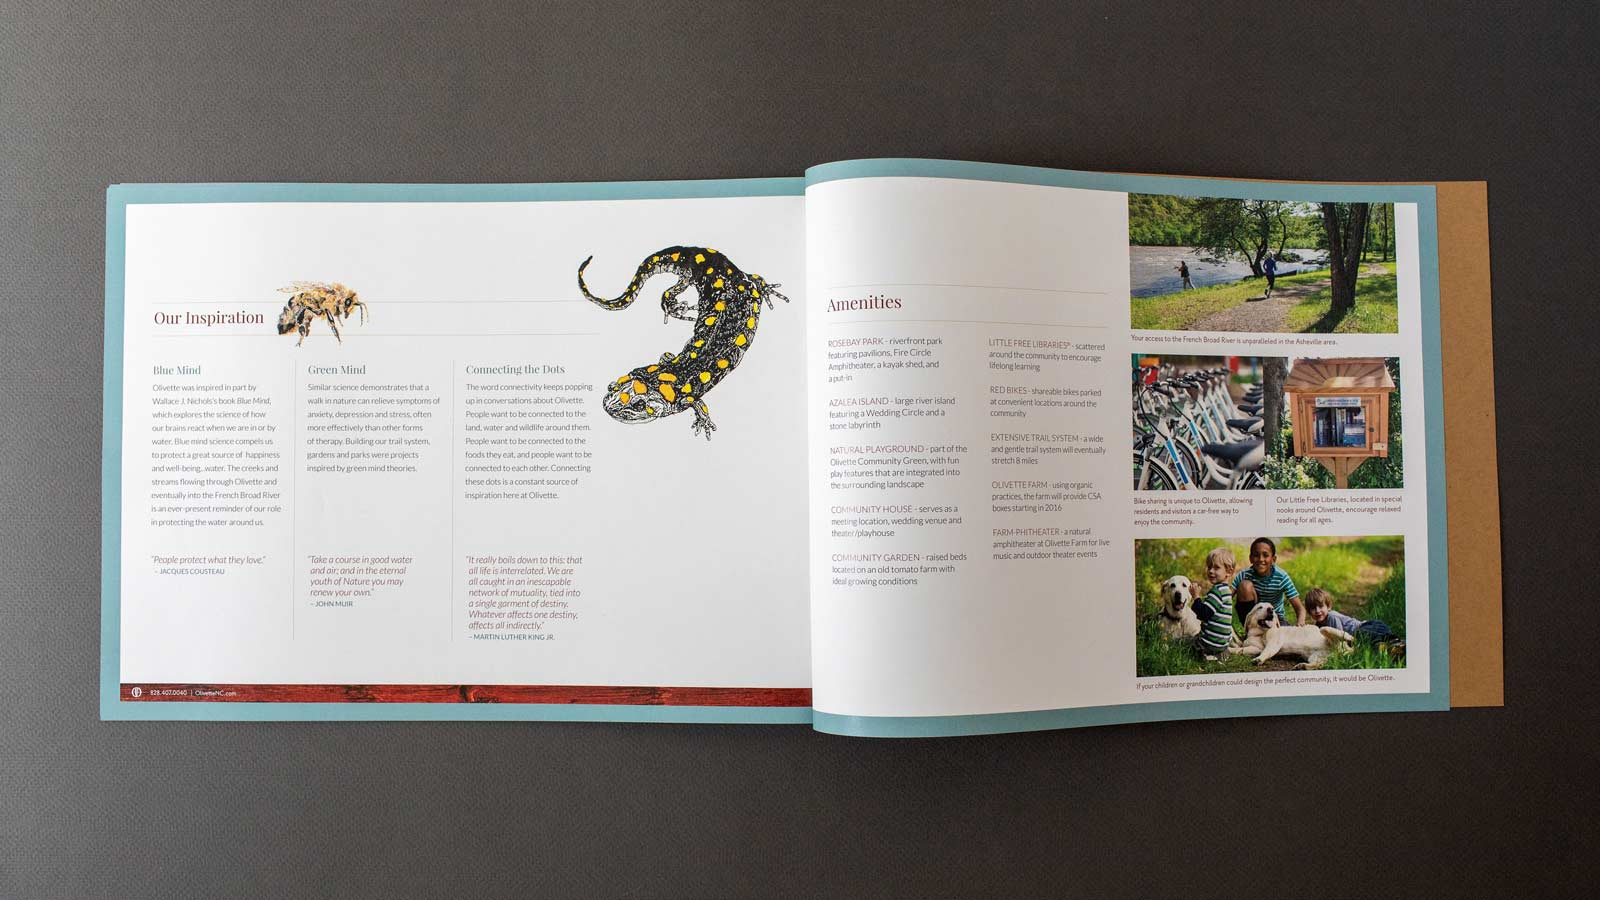 Olivette Riverside Community and Farm catalog book spreads with images of the property and illustration of a salamander